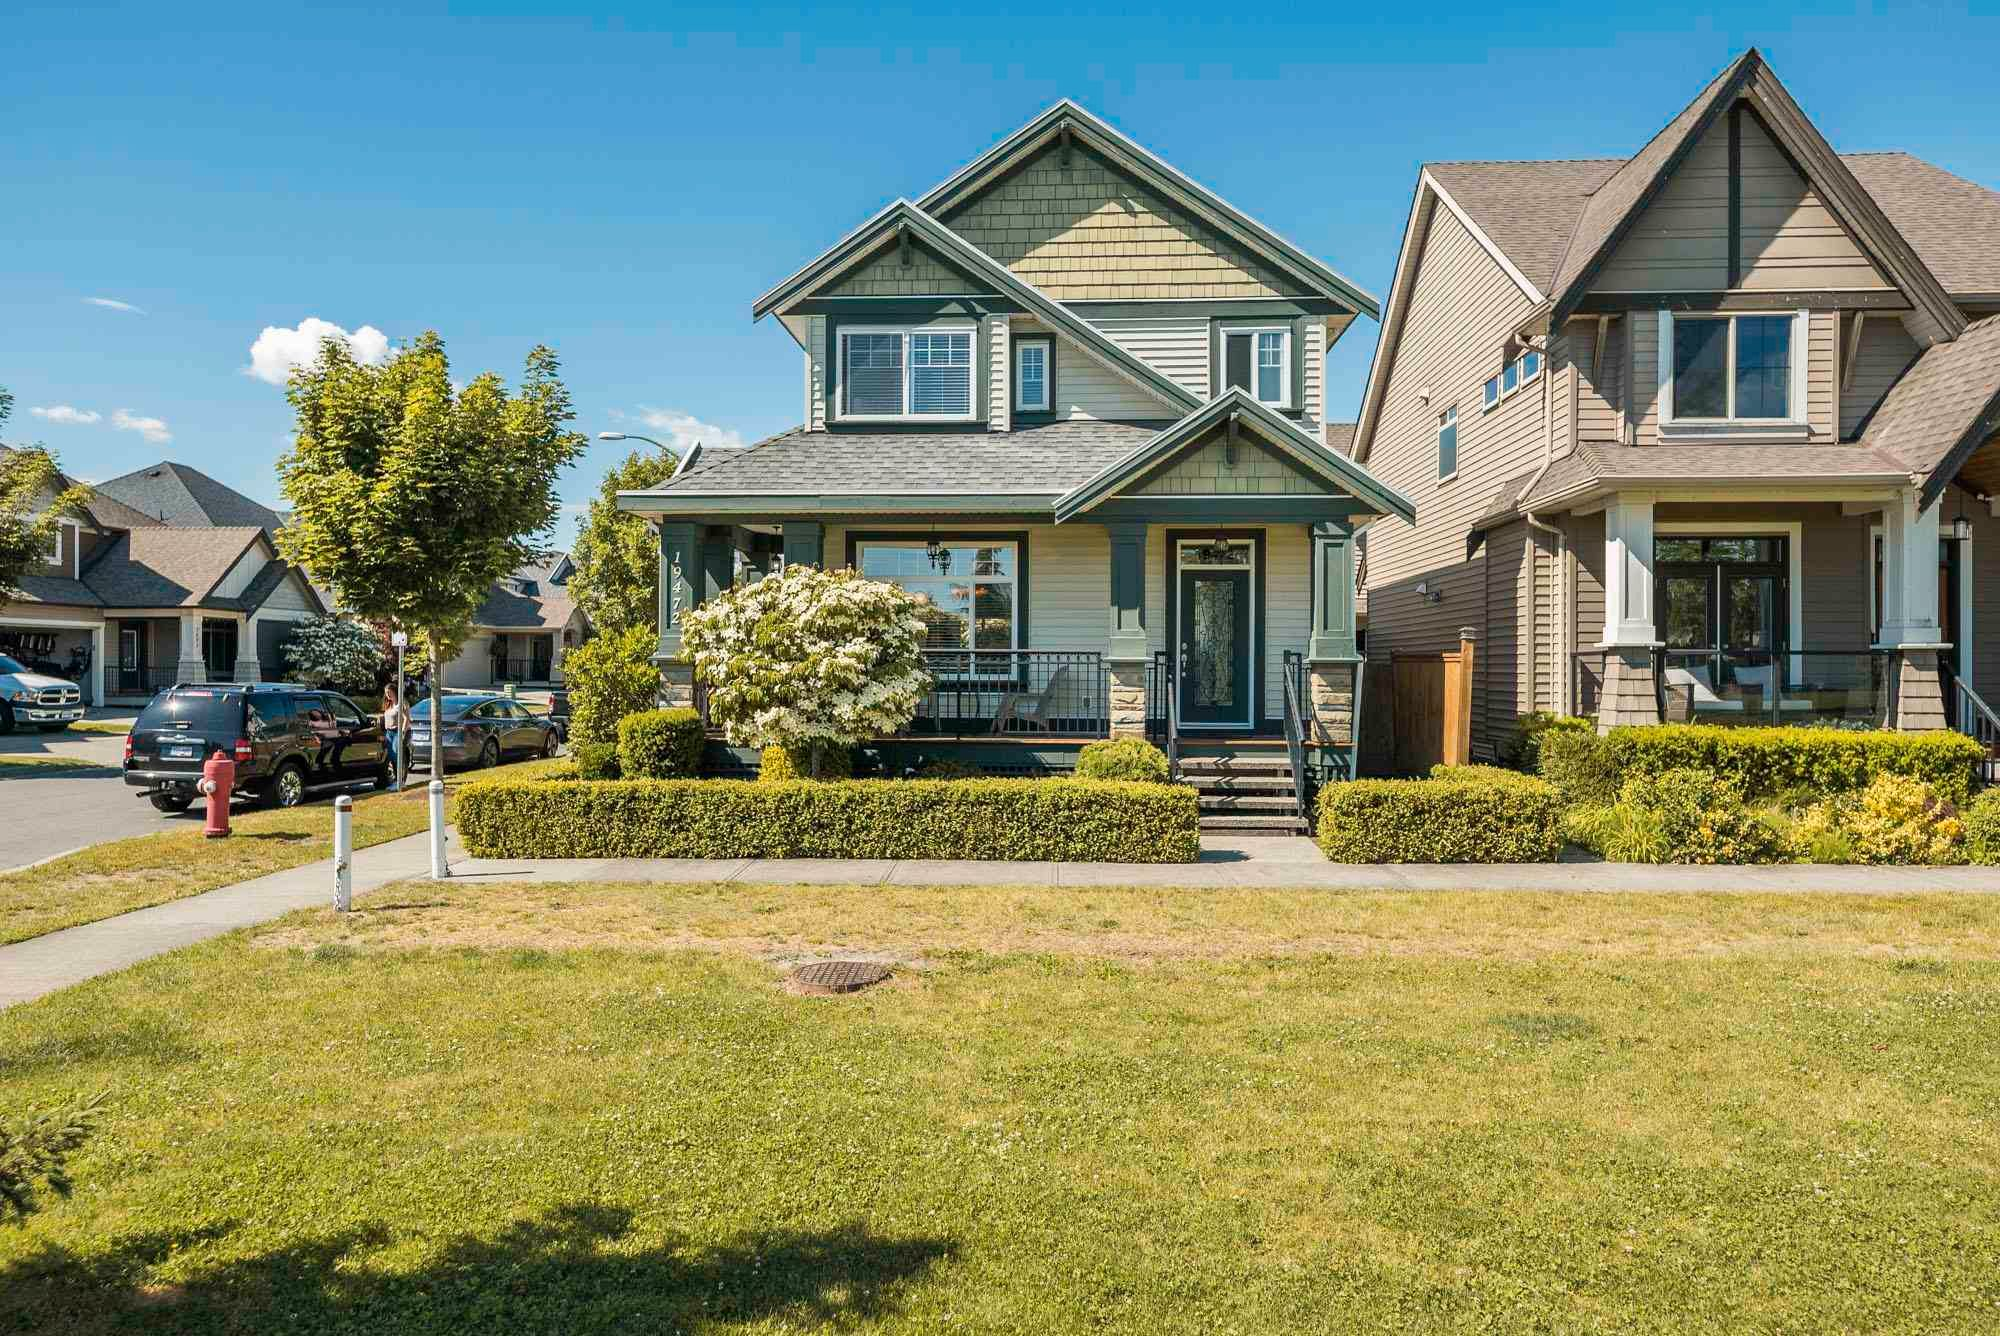 """Main Photo: 19472 71 Avenue in Surrey: Clayton House for sale in """"Clayton Heights"""" (Cloverdale)  : MLS®# R2593550"""